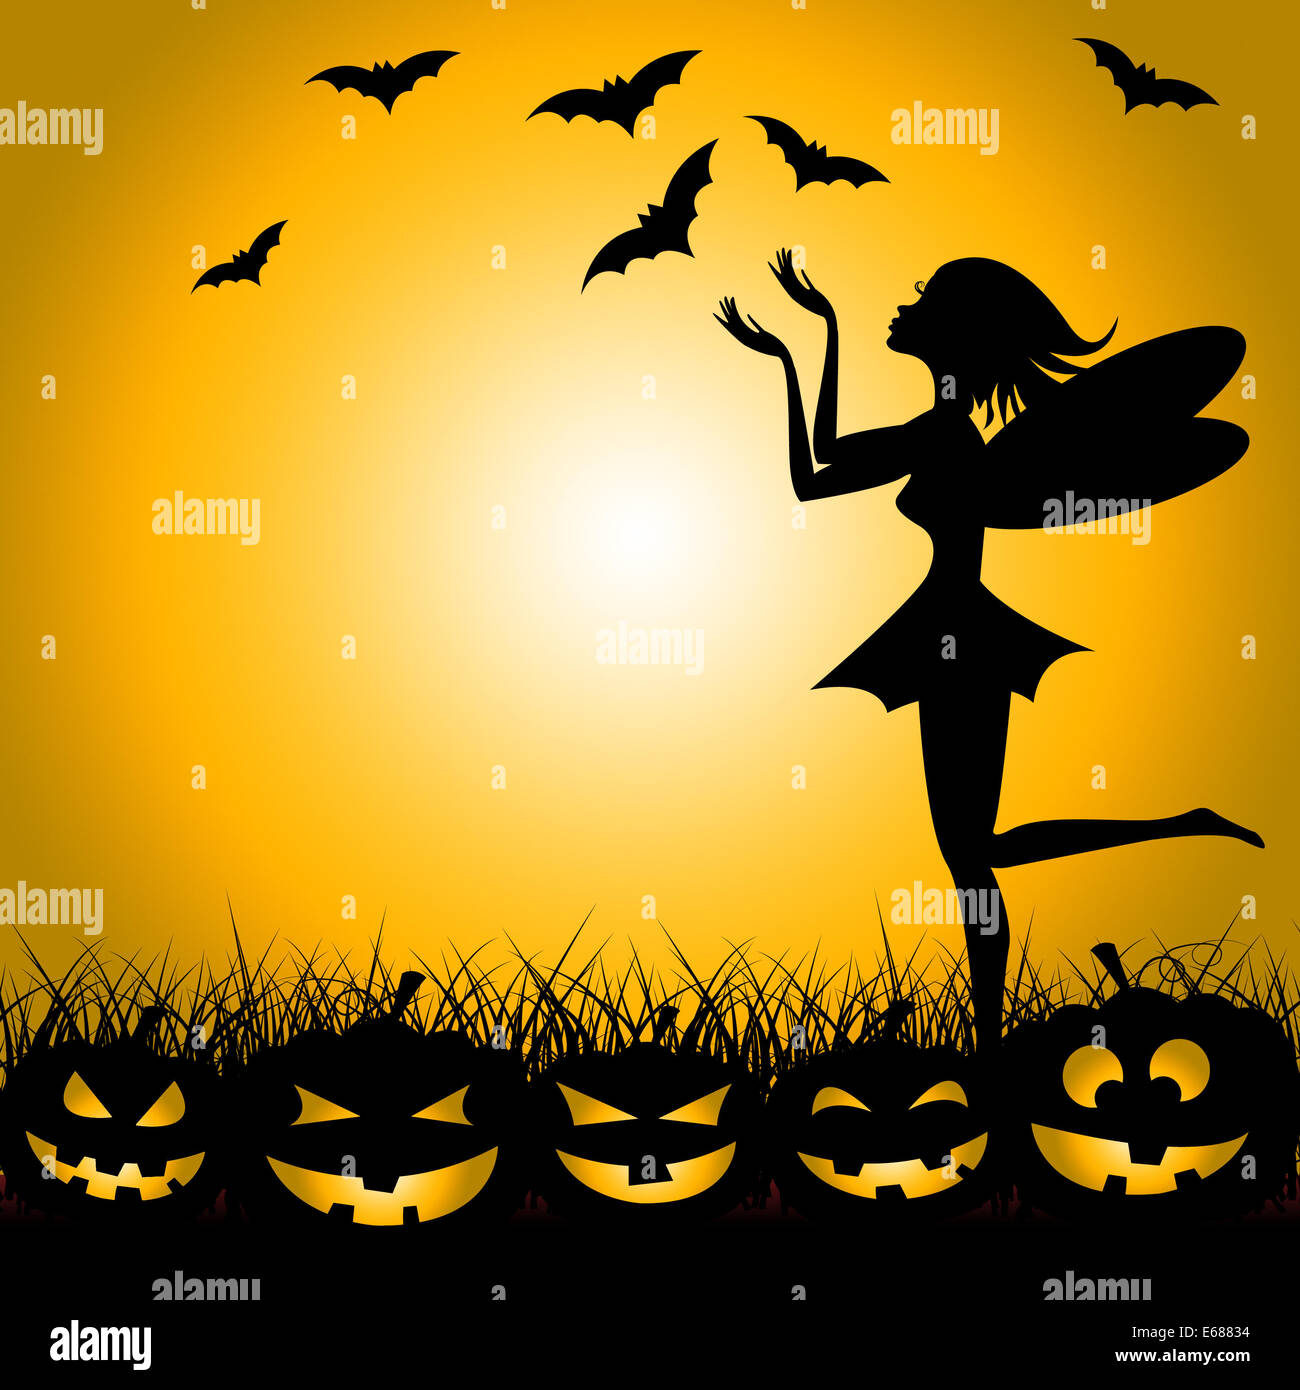 Halloween Pumpkin Meaning Trick Or Treat And Fairy Tale Stock ...